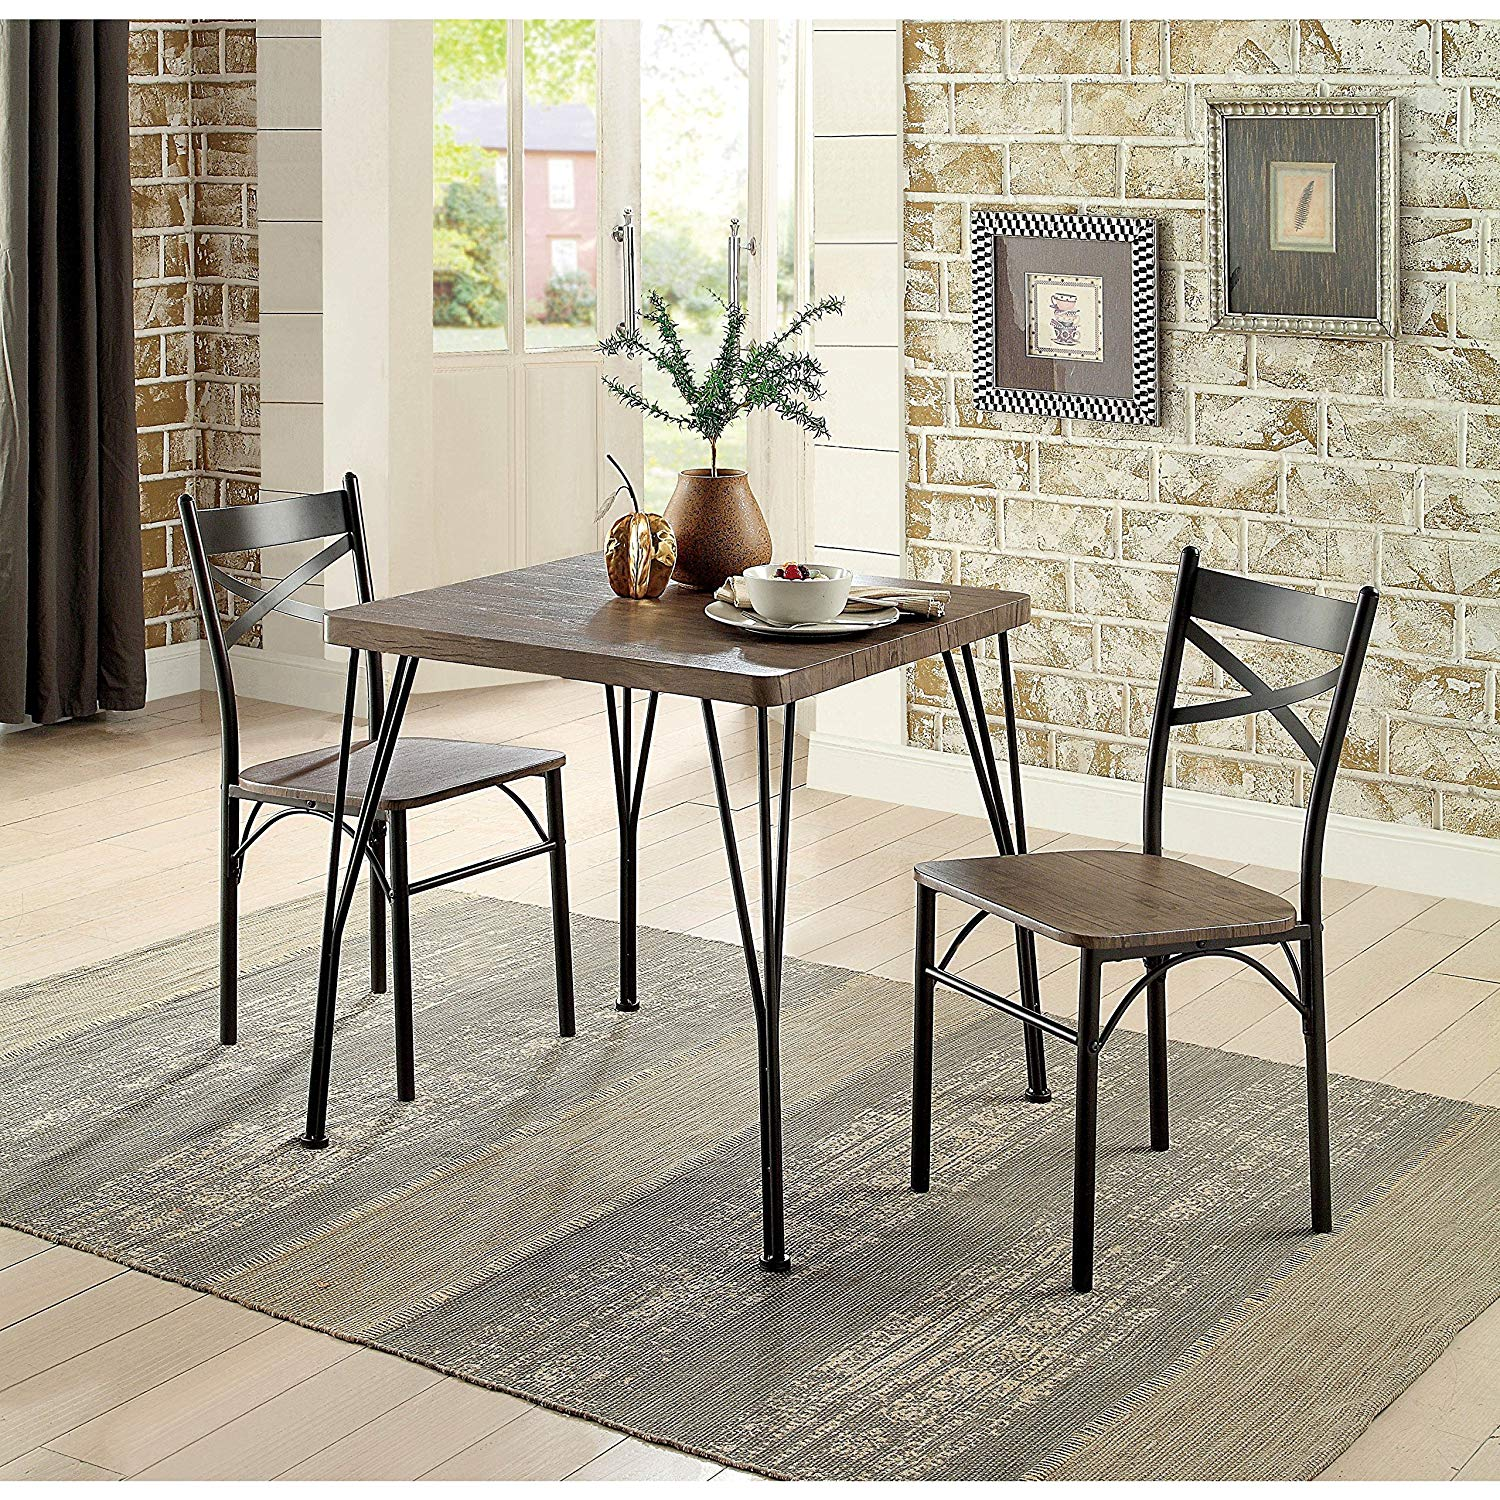 Industrial 3-Piece Dark Bronze Compact Dining Set, Includes 1 Dining Table and 2 Chairs, Space-Saving Design, Square Wood Veneer Table with Rounded Corners, Sturdy Metal Legs, Multiple Finishes